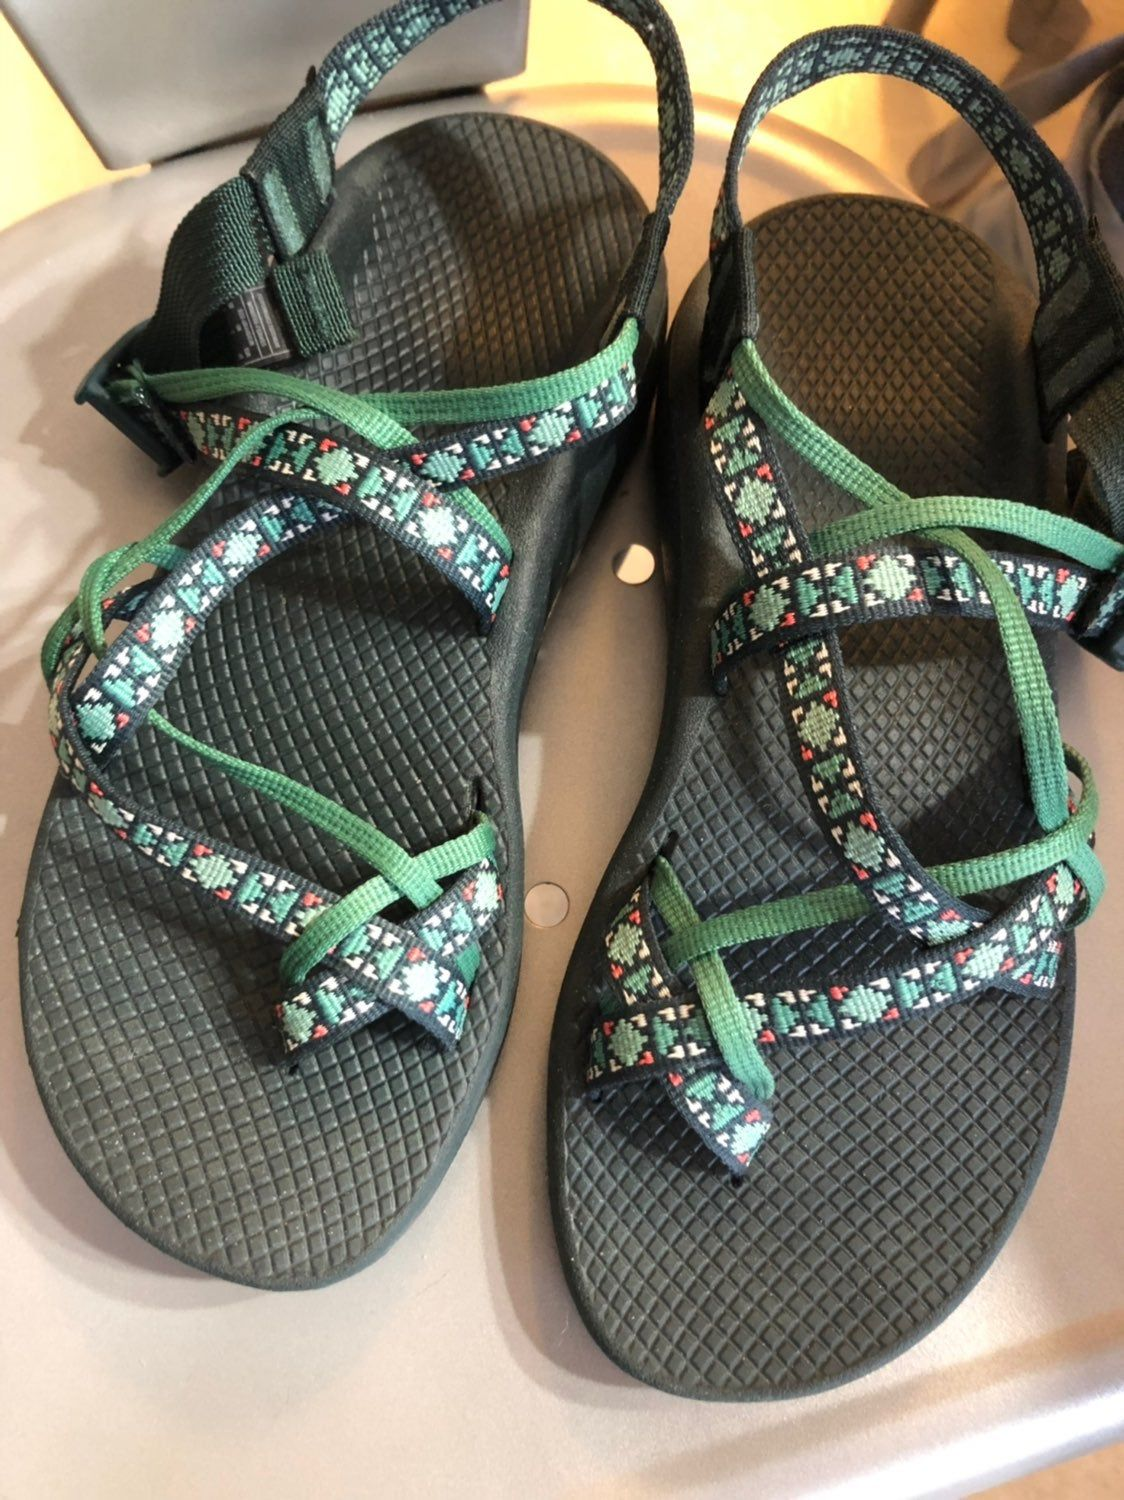 Women S Chacos Size 9 Color Creed Pine Worn Only A Few Times Like New Womens Chacos Chacos Womens Flip Flop